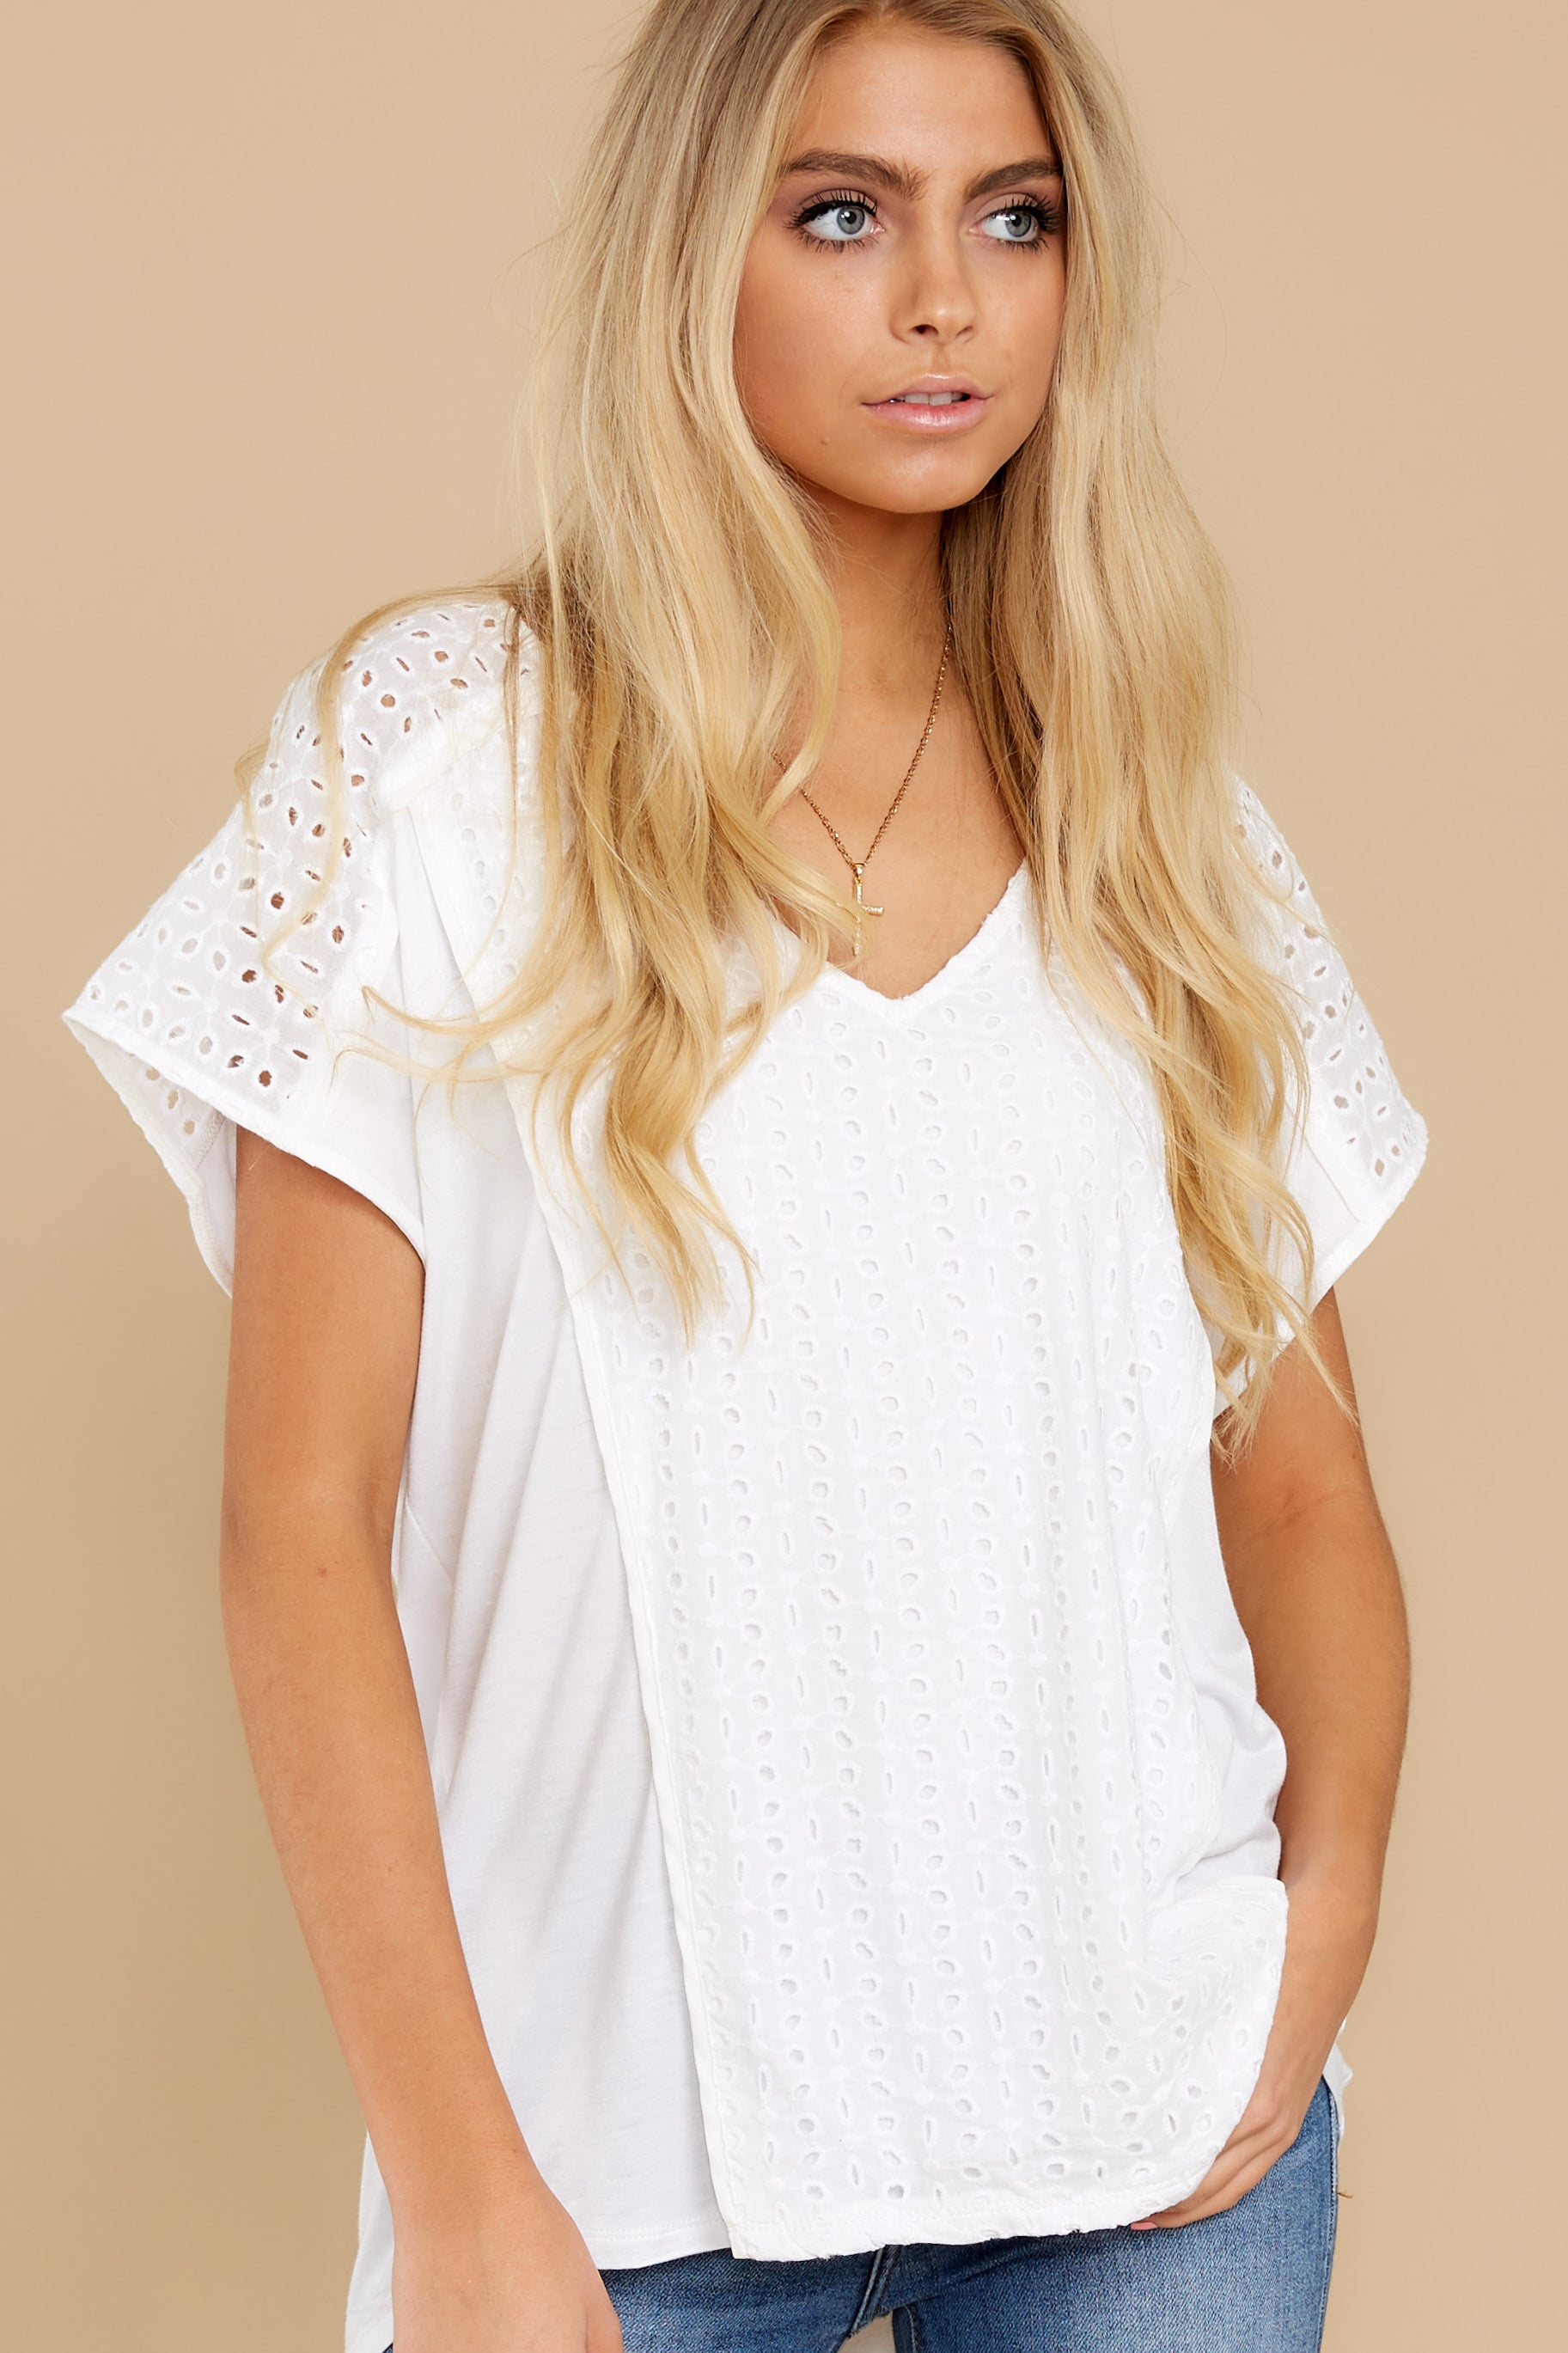 5 All My Time White Eyelet Top at reddress.com